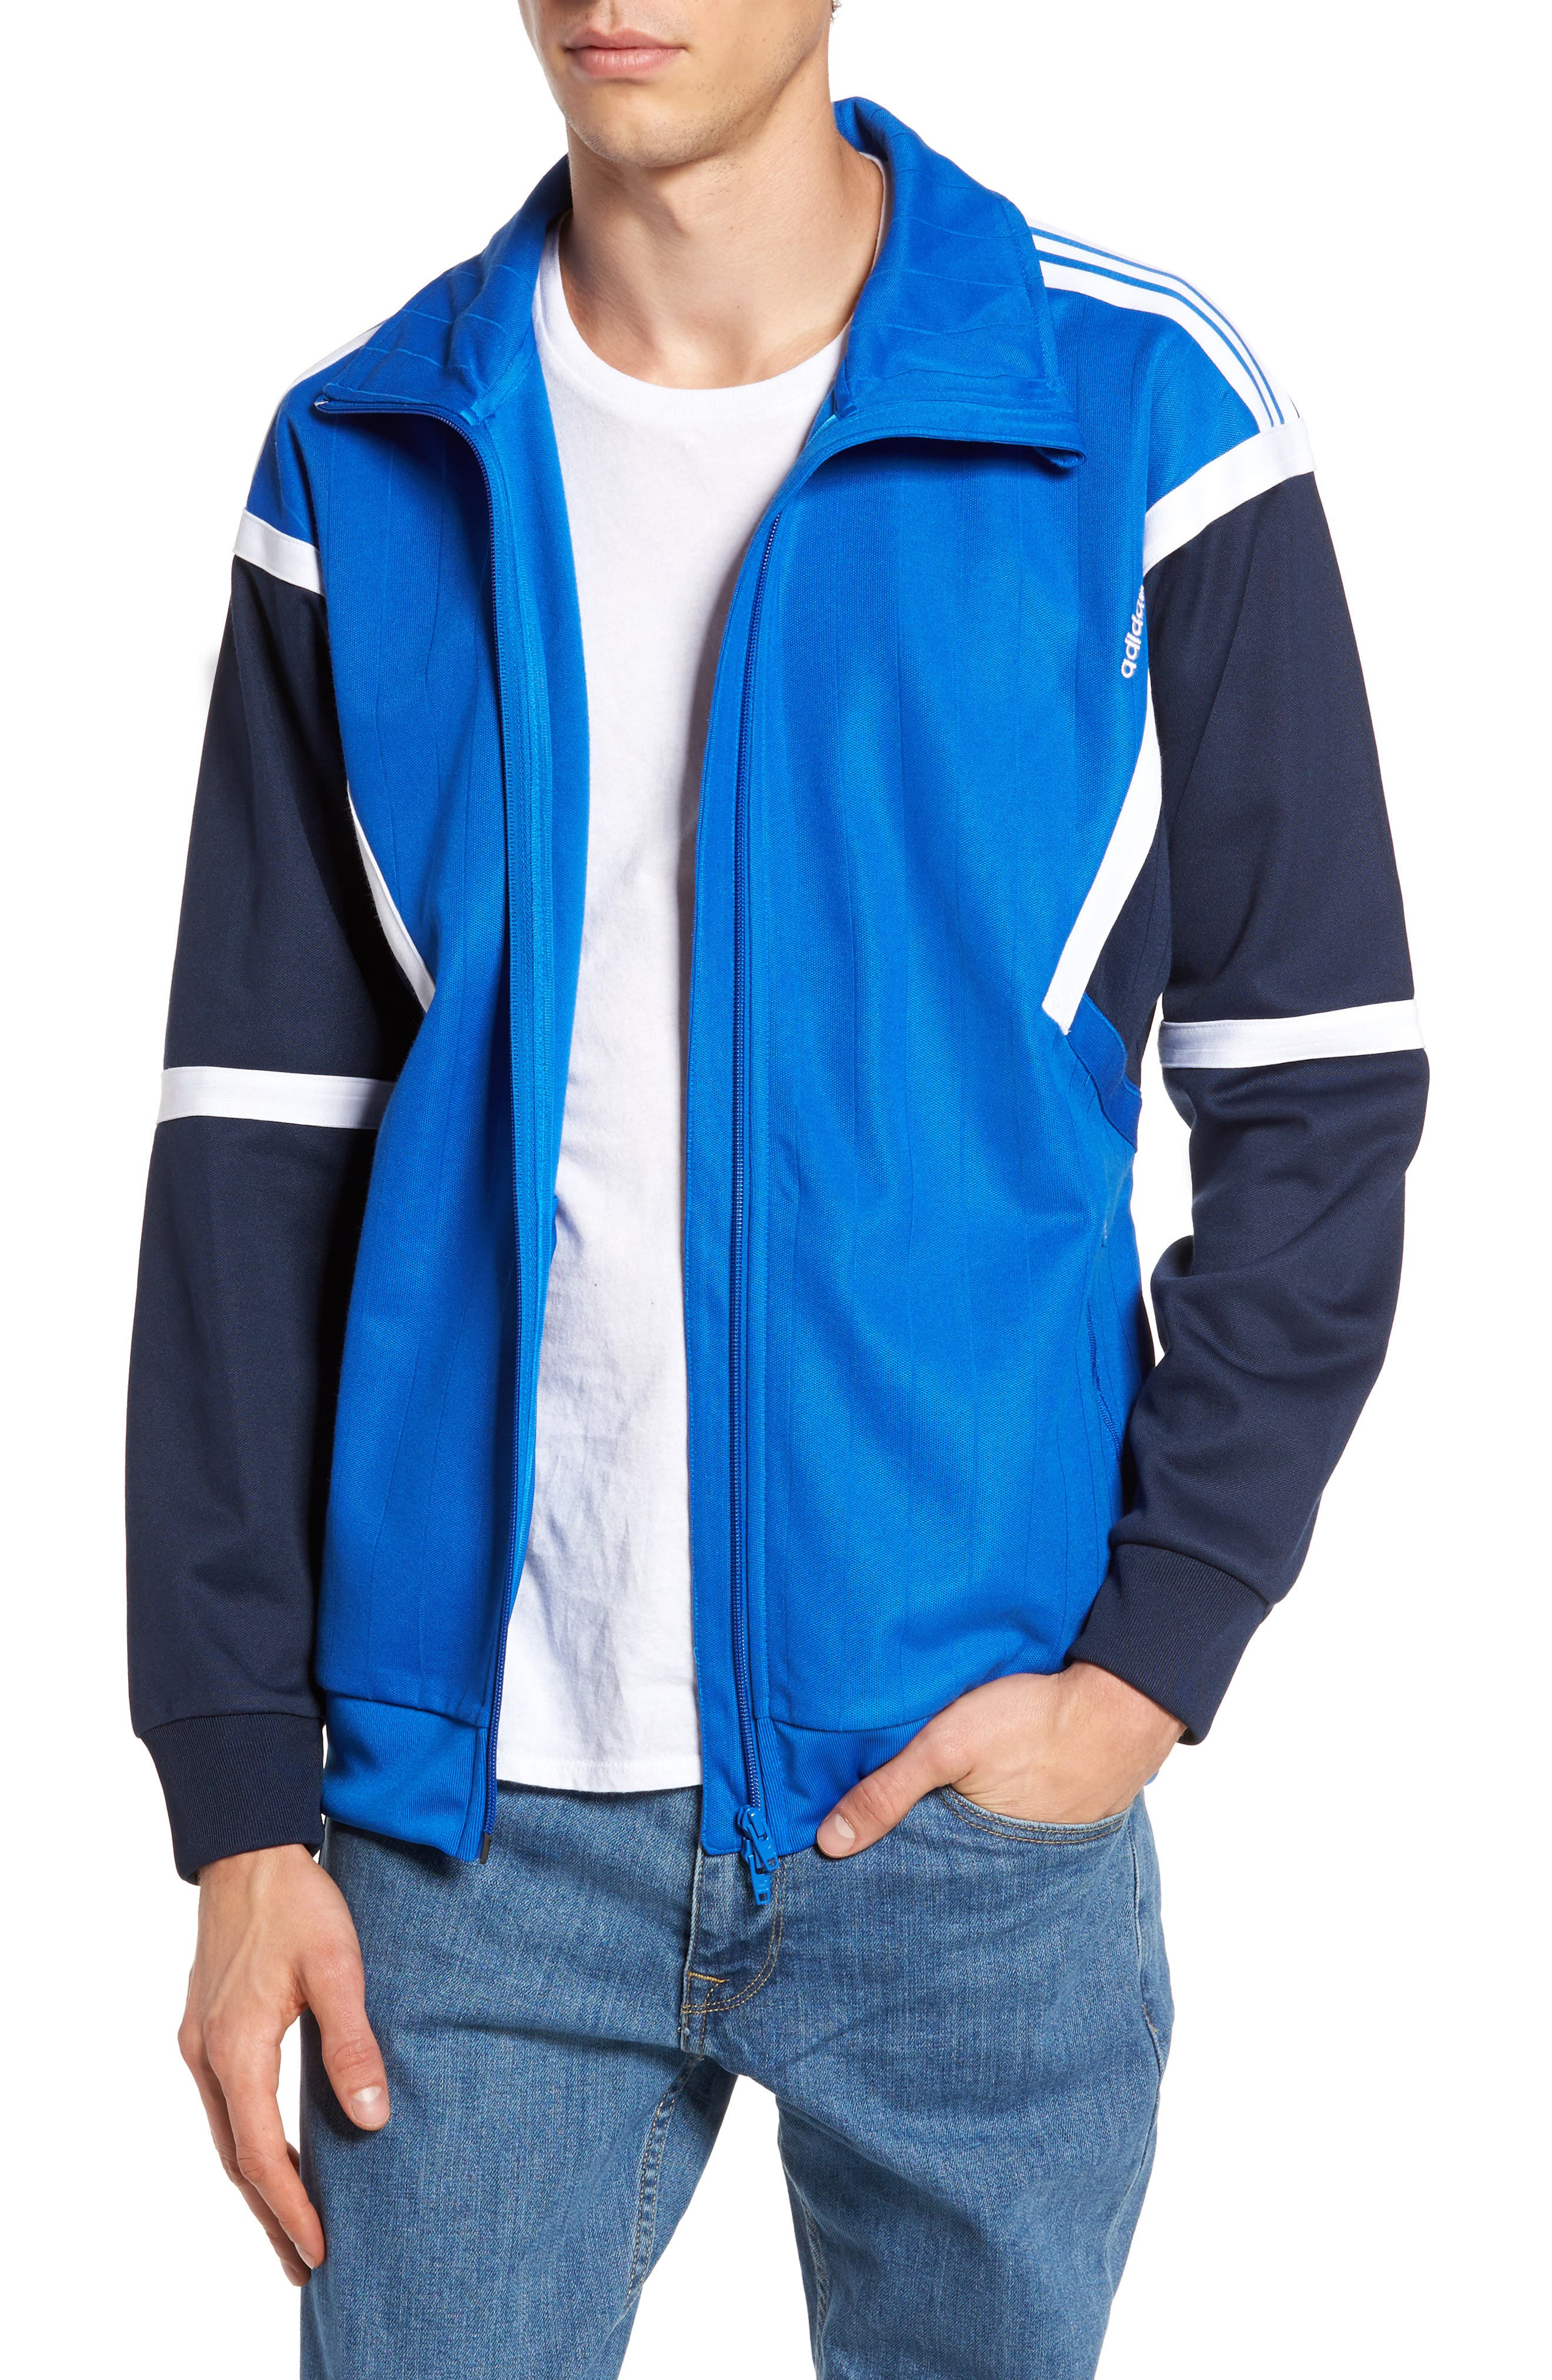 Water Resistant Training Track Jacket,                         Main,                         color, 435